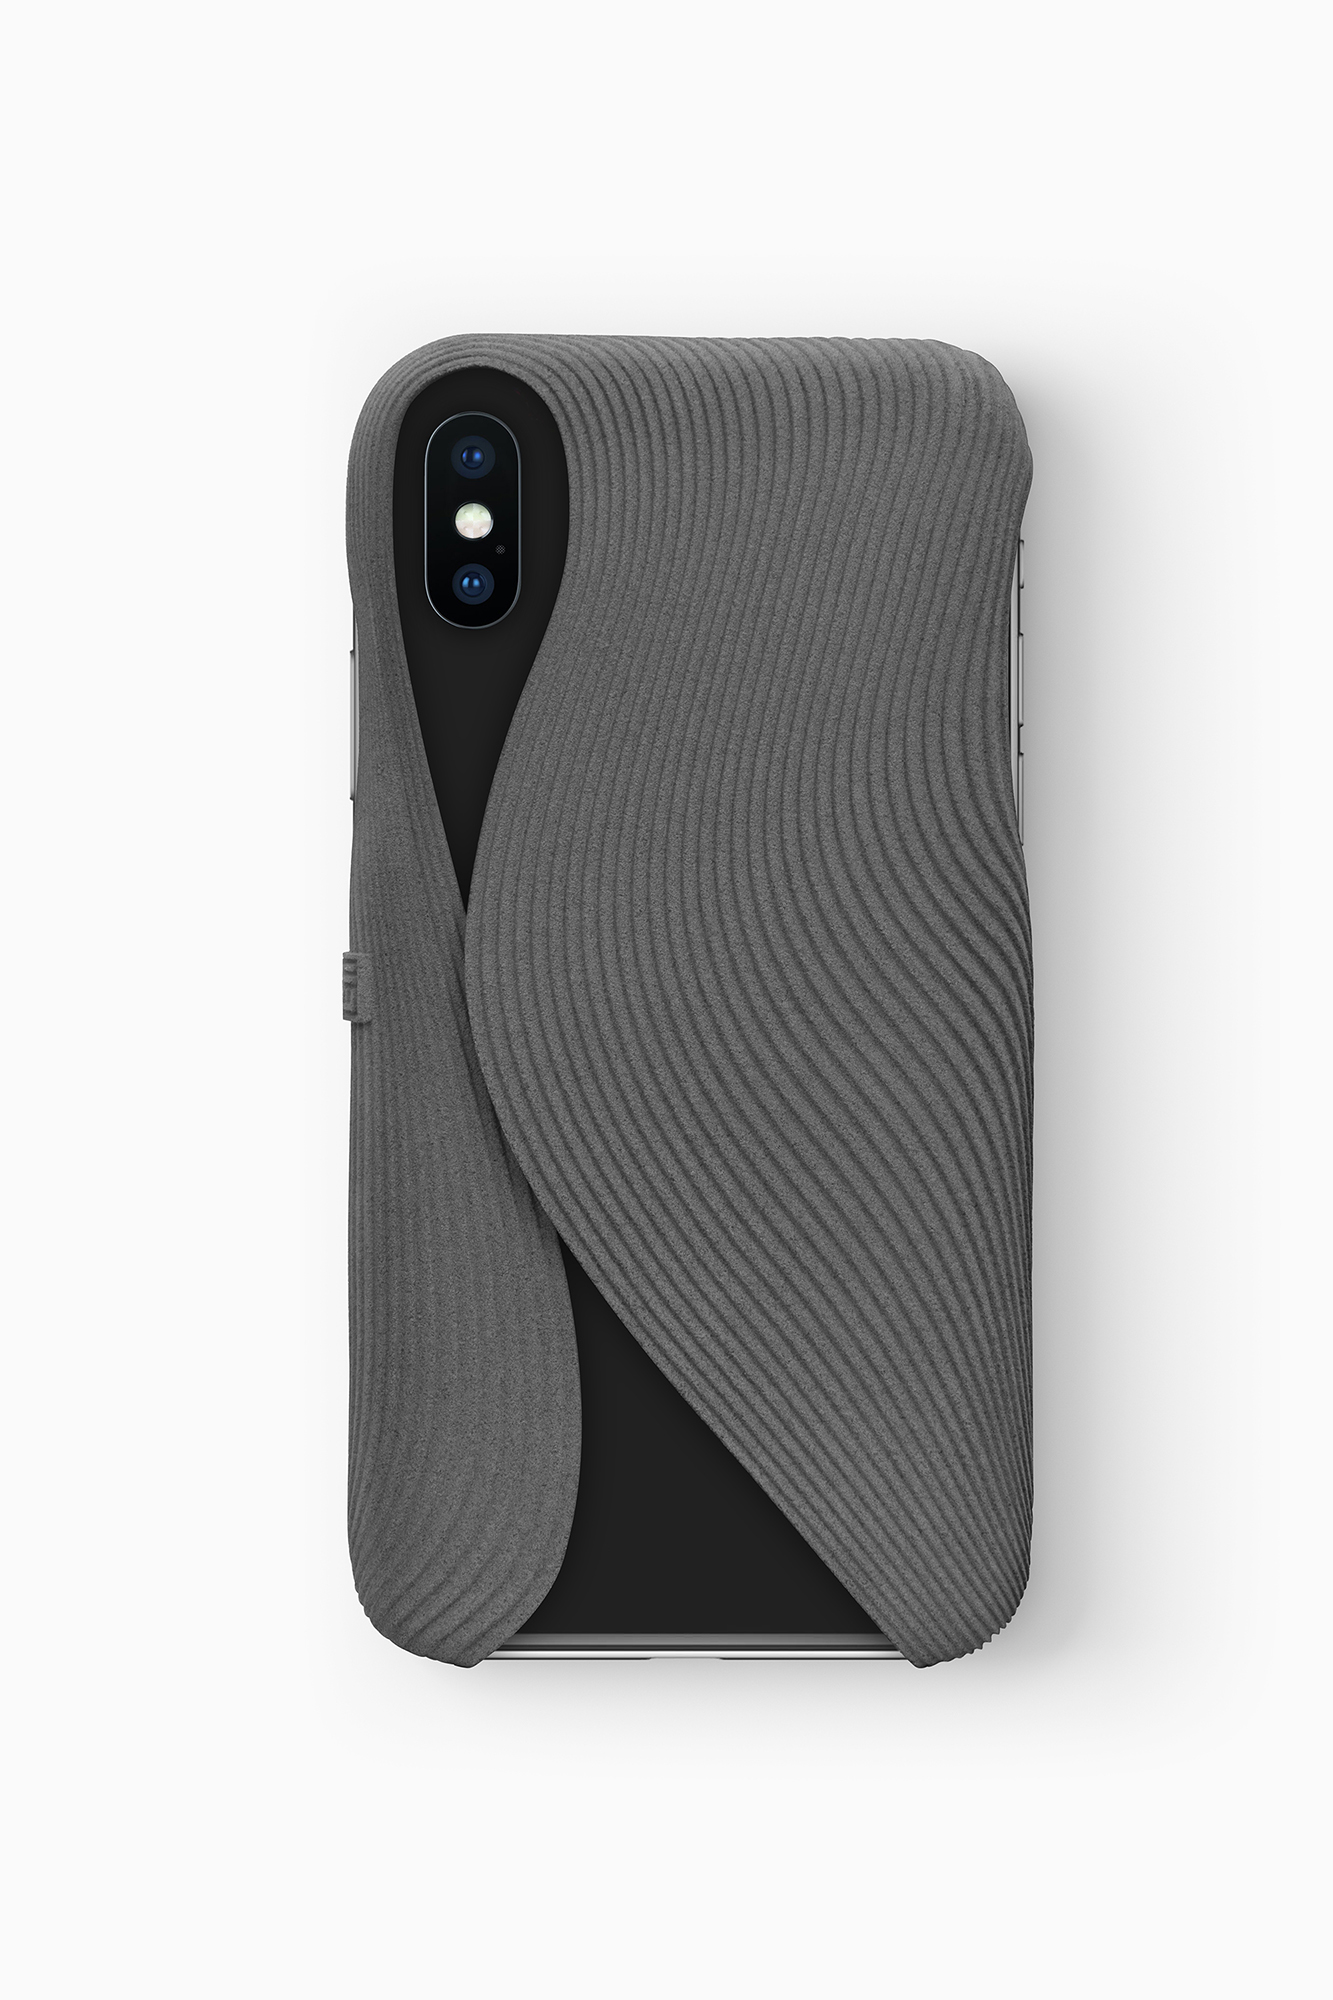 FOLD Case for iPhone X in Grey, Design by Matthijs Kok for Freshfiber